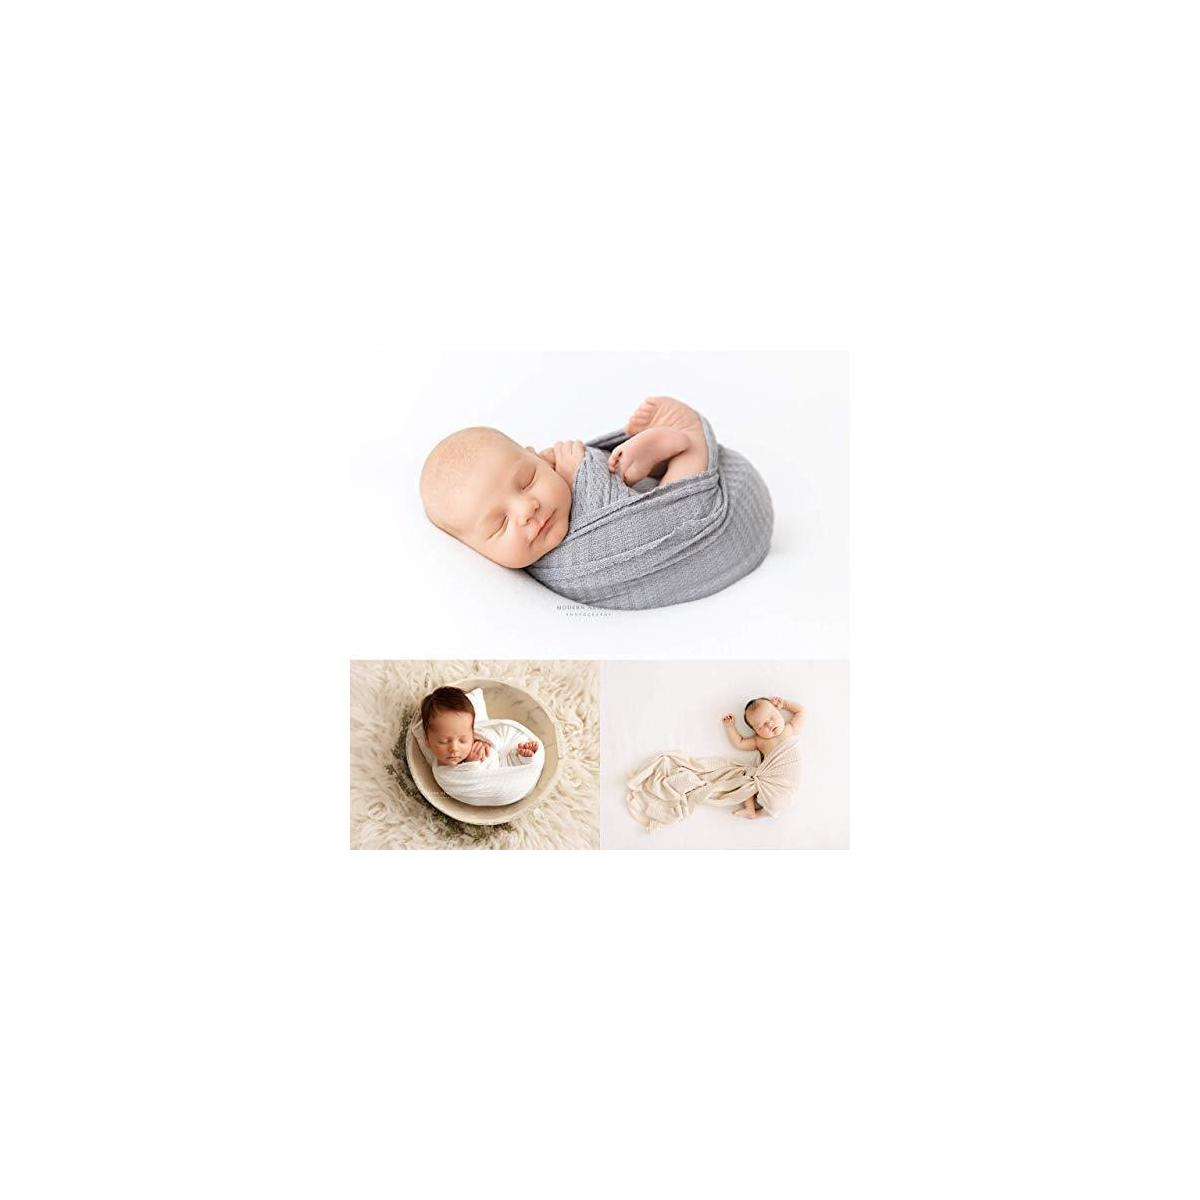 First Landings Baby Wrap | Set of 3 Premium Knit Wraps | Newborn Photography Props for Boy or Girl Photoshoot